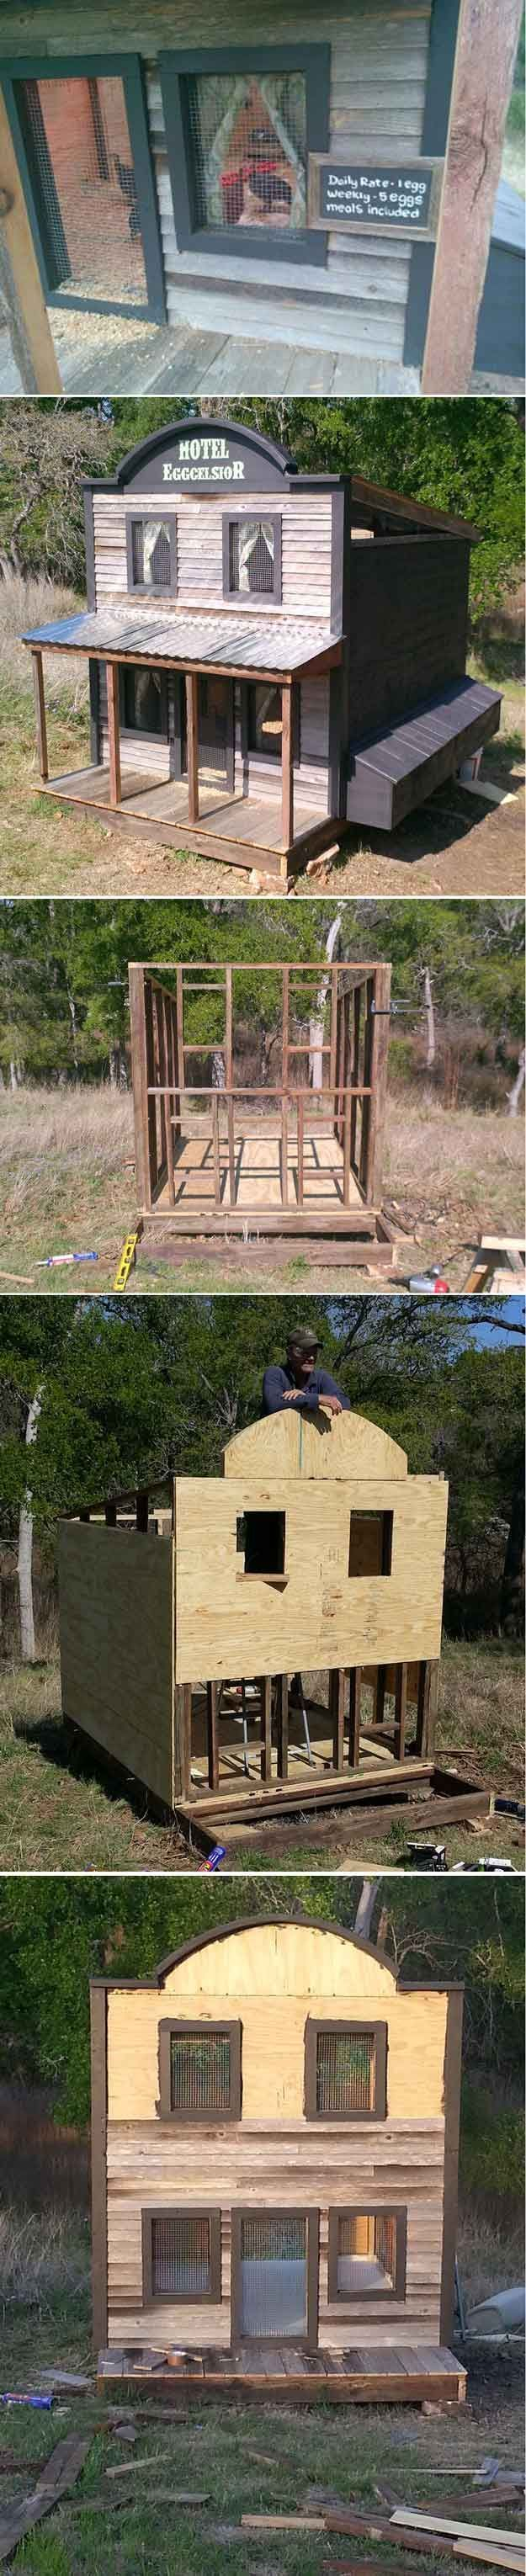 Best 20 cute chicken coops ideas on pinterest chicken for Where to buy cheap land for homesteading